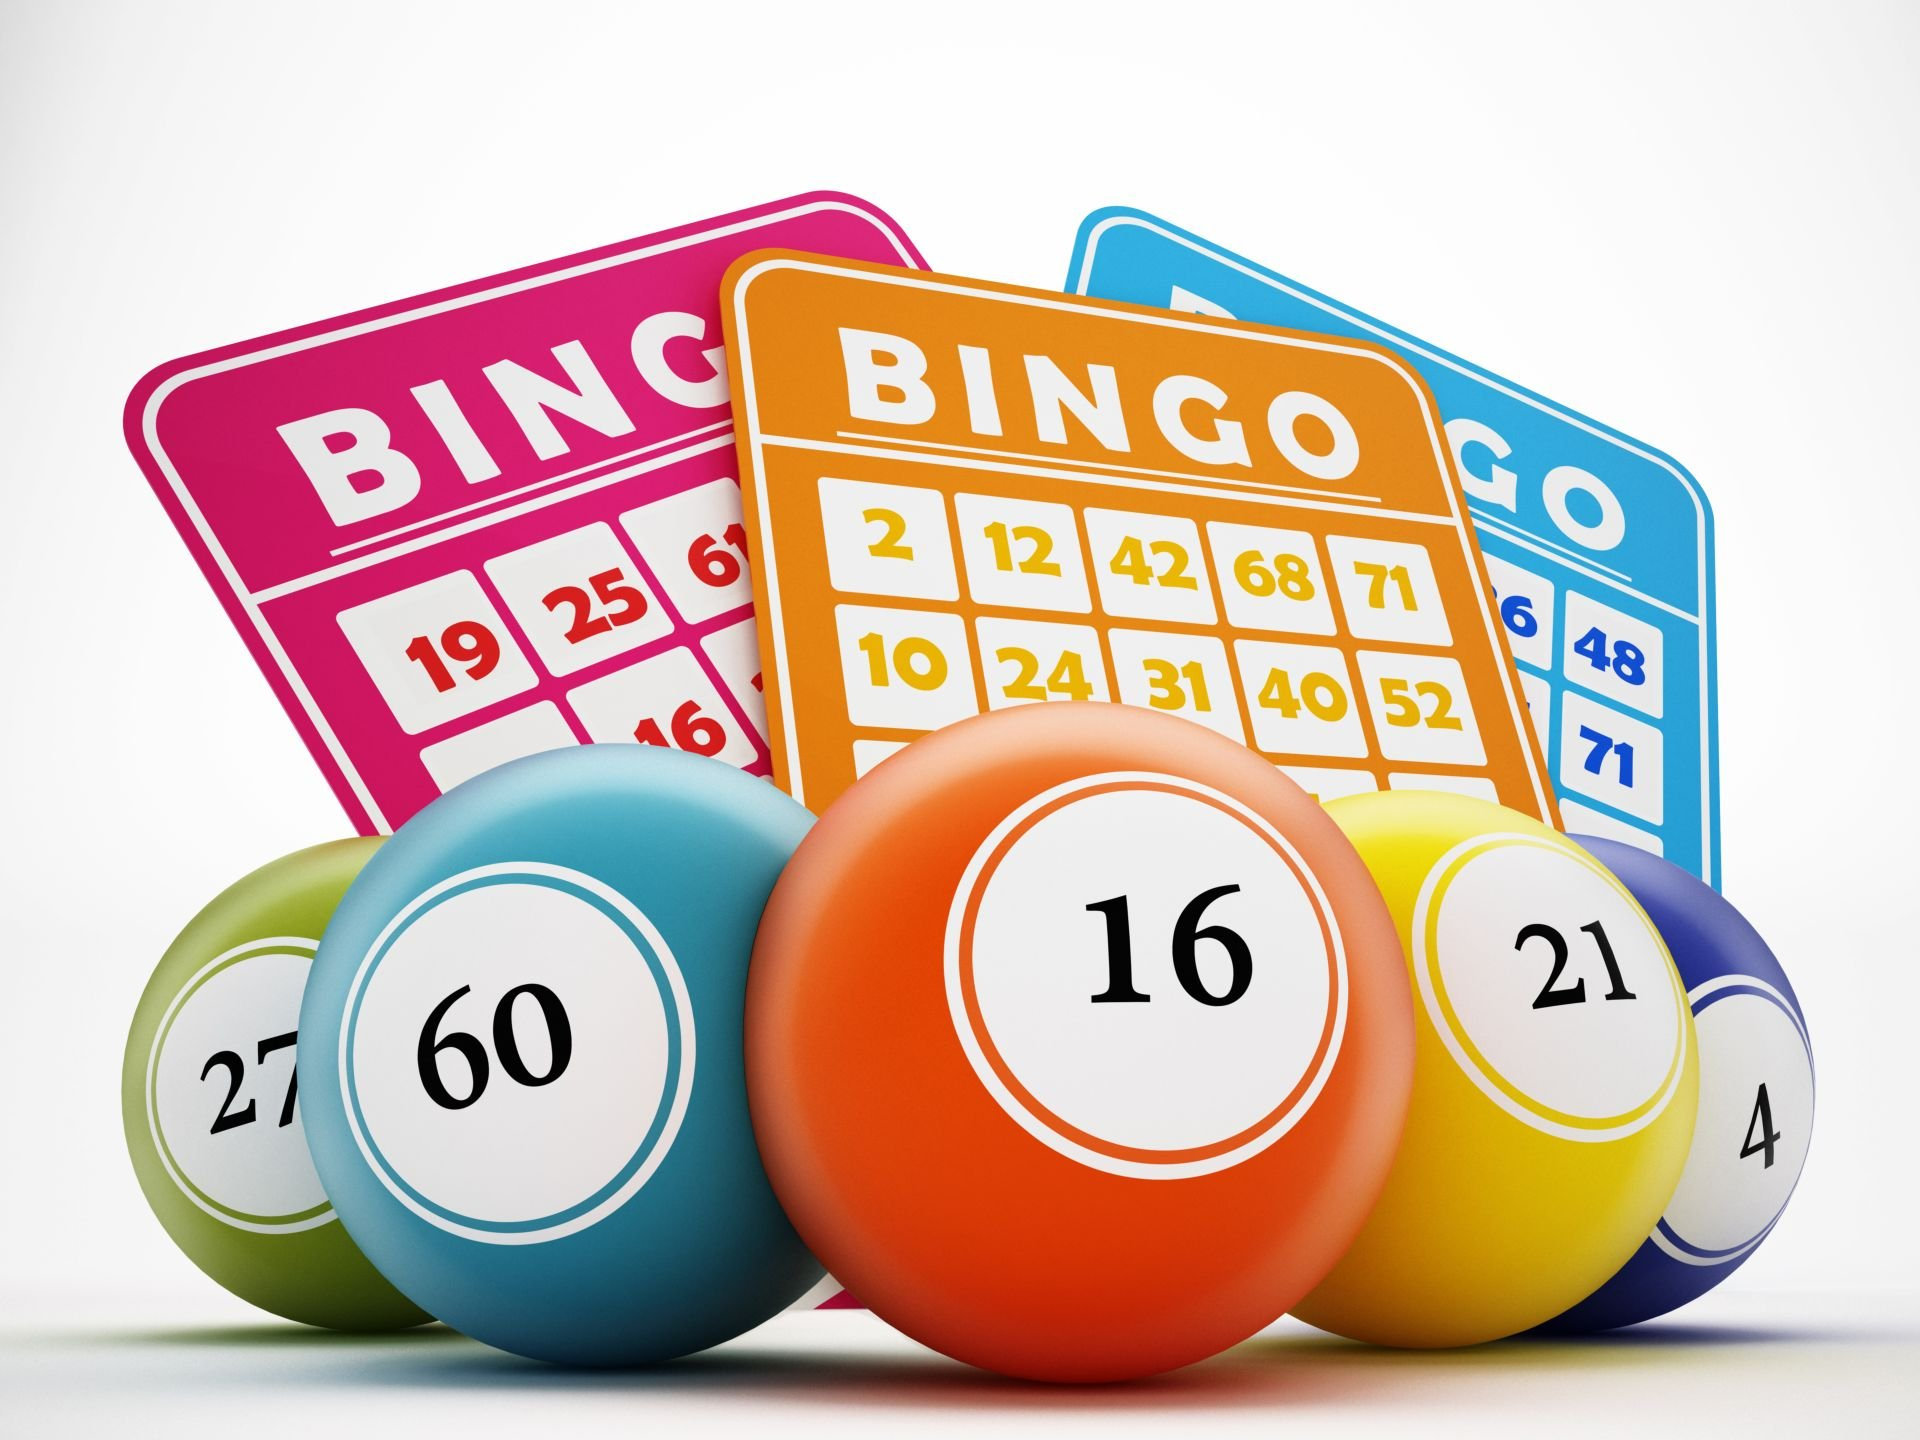 Scientist believe playing Bingo is good for your brain